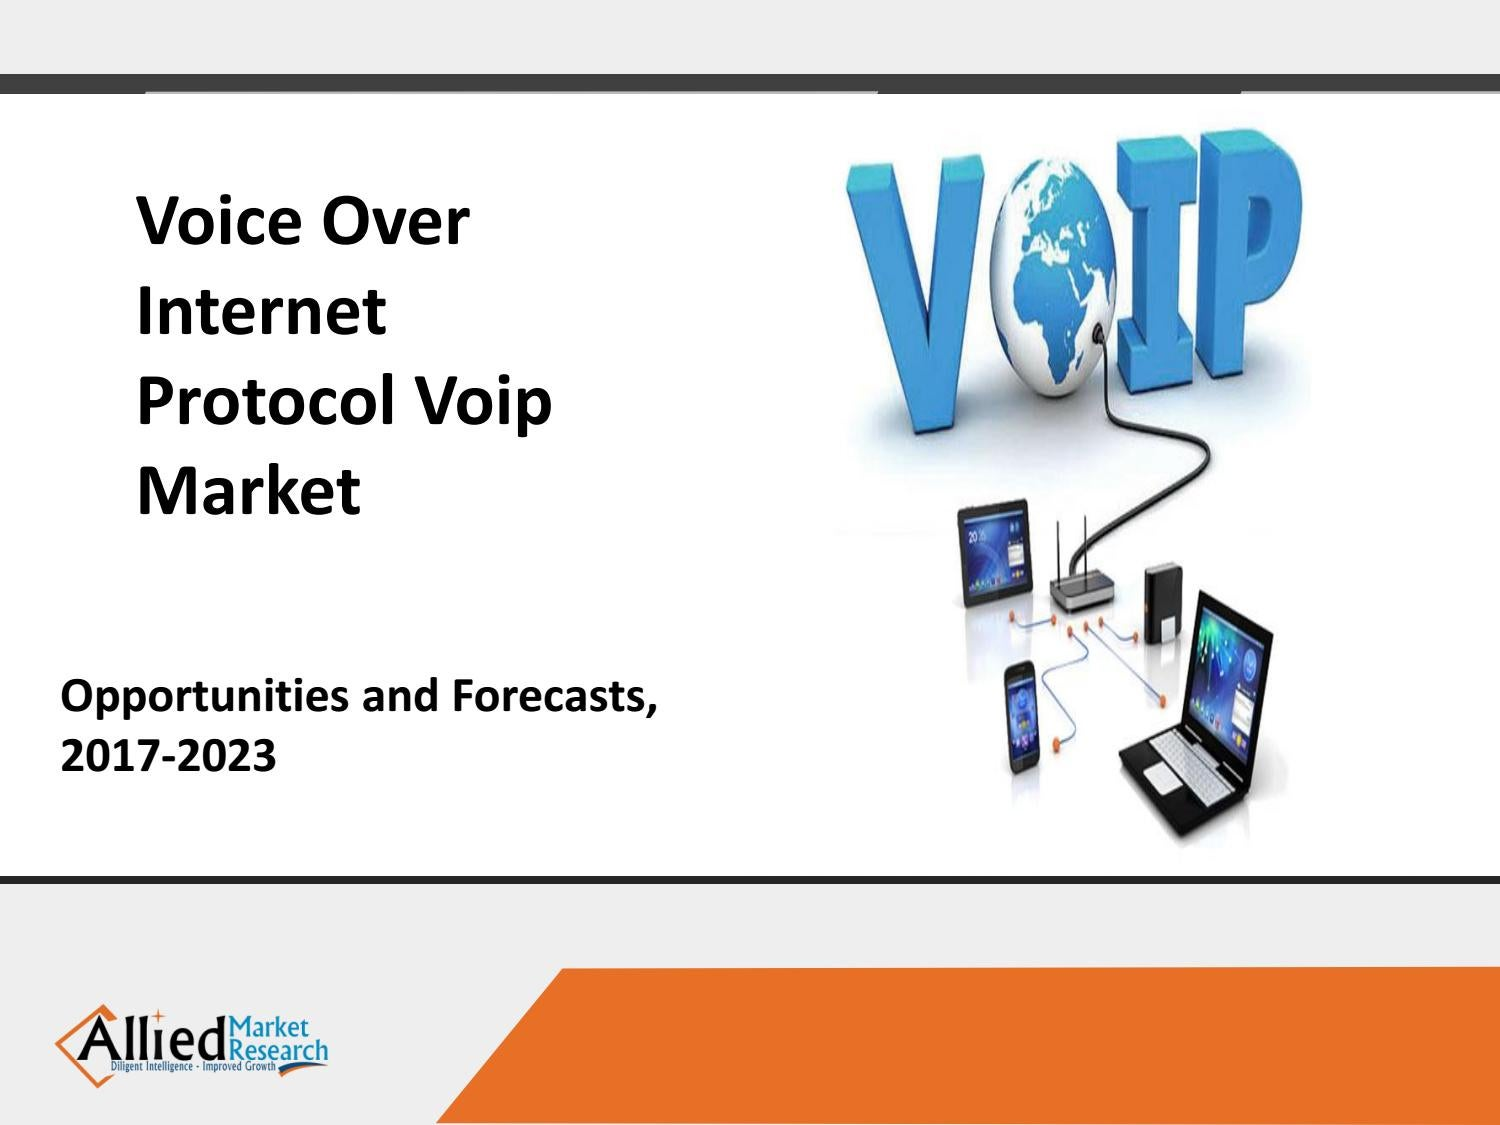 Voice Over Internet Protocol Voip Market By Luke Adam Issuu